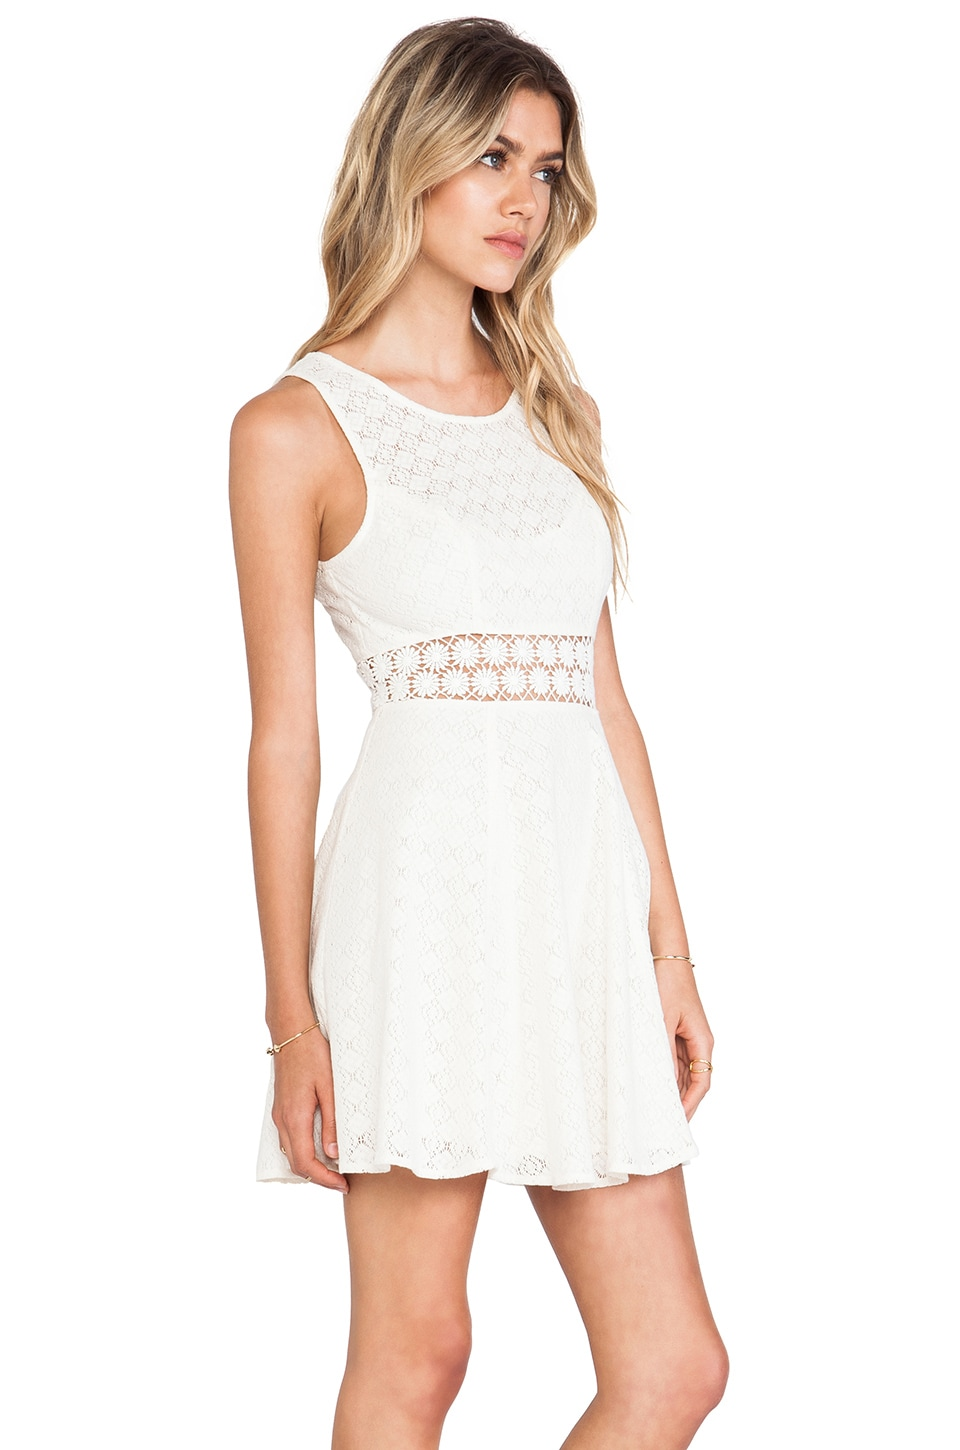 Free People Daisy Waist Dress in Ivory